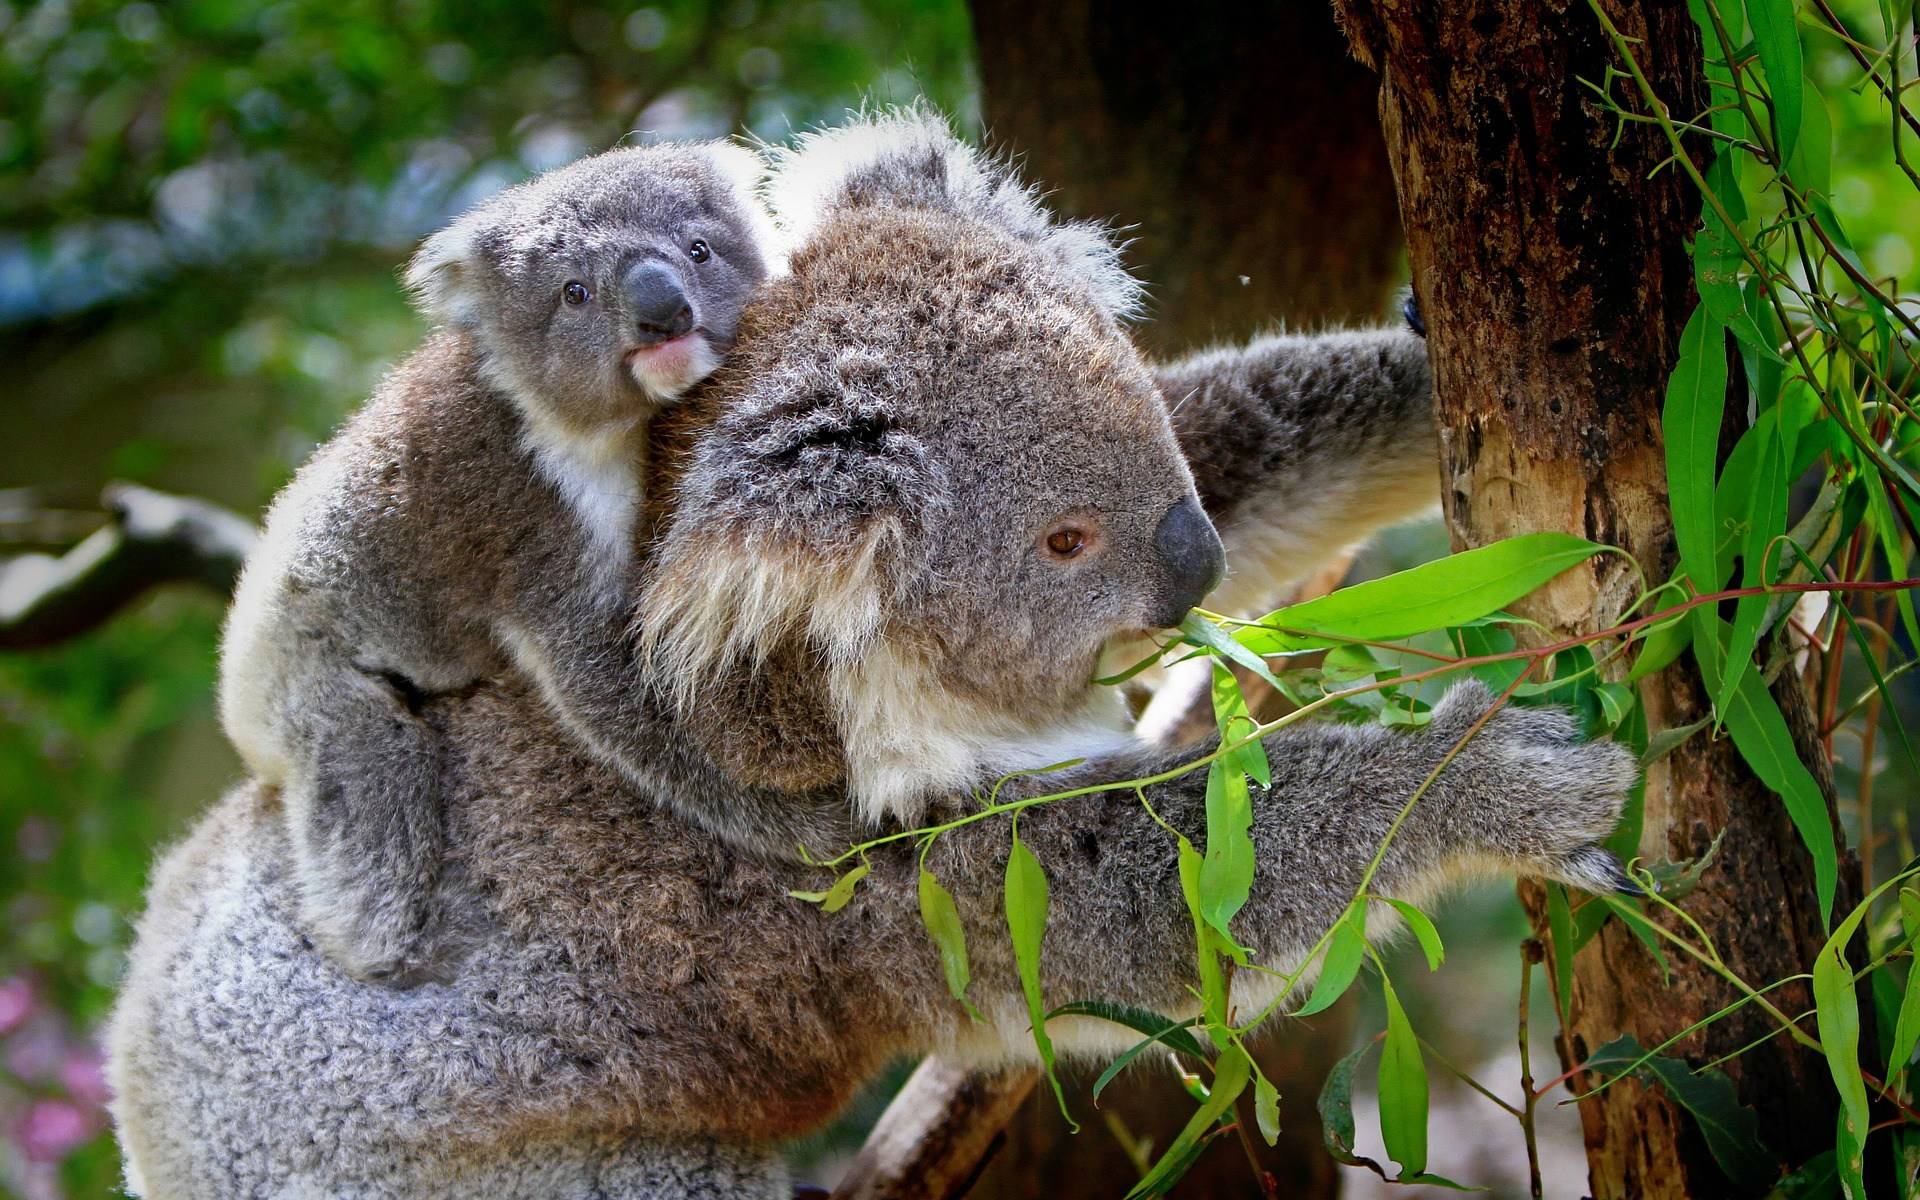 Koala parent and baby in Australia we need to protect our wildlife and home life.